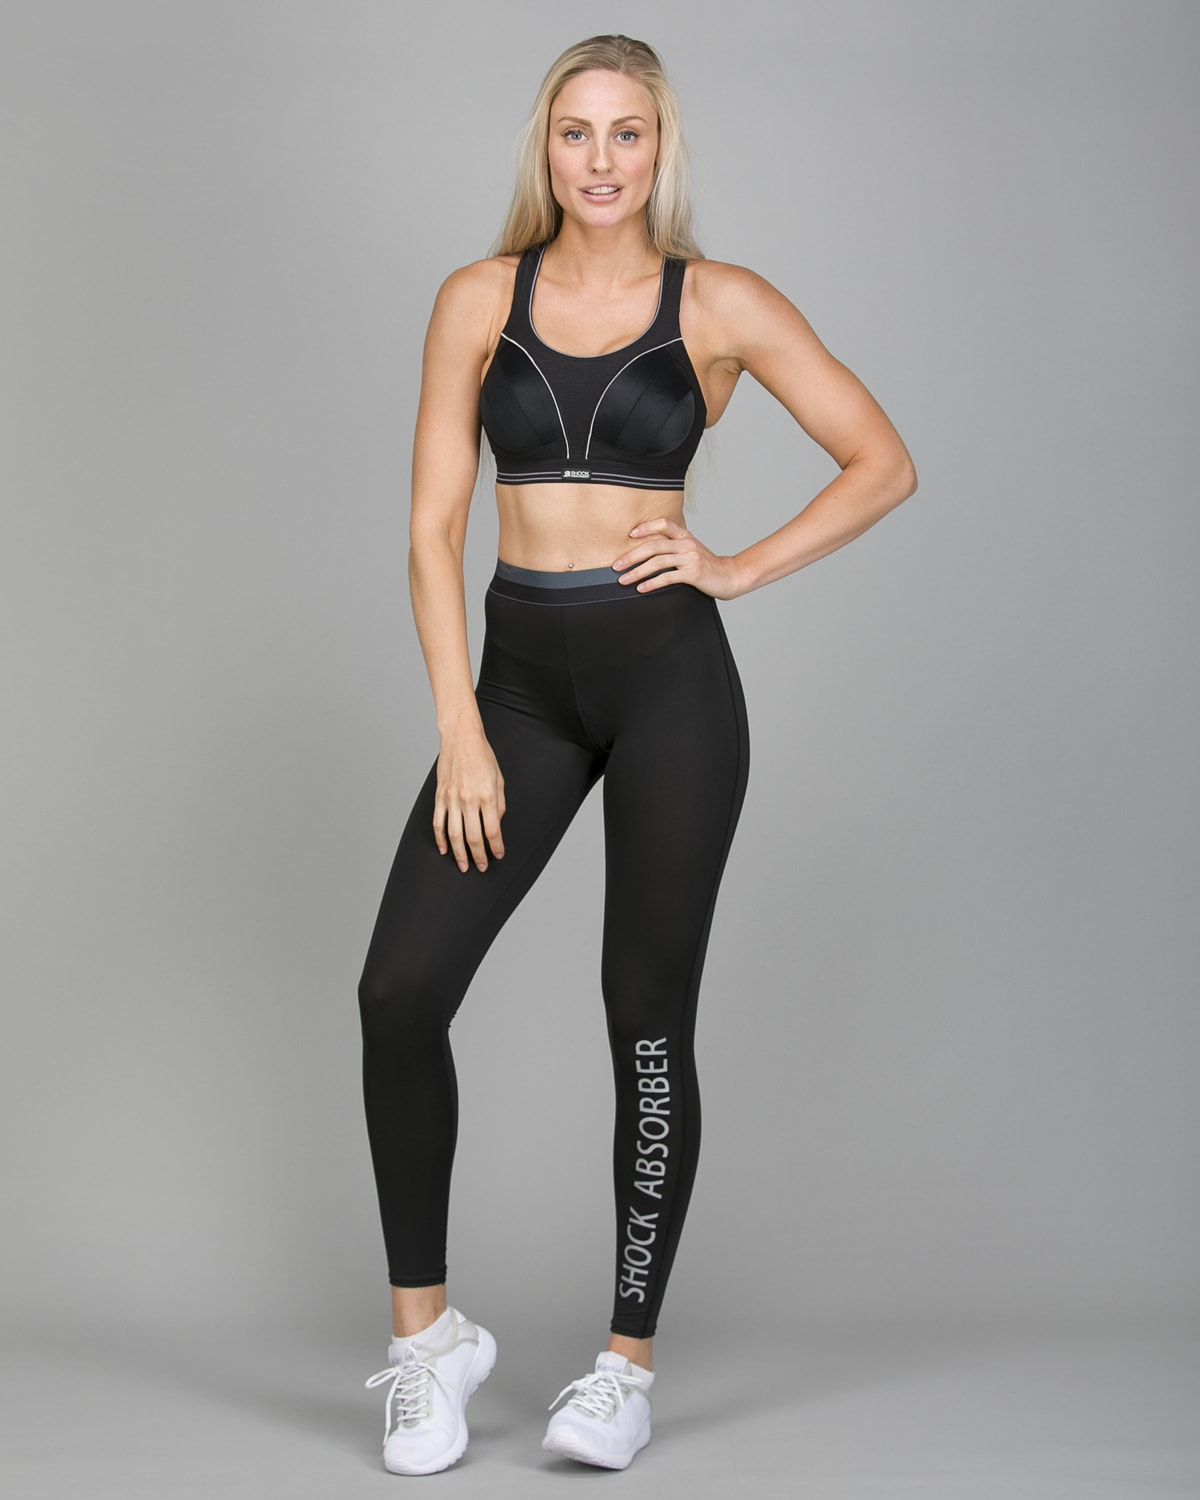 Shock Absorber Active Branded Legging S06TE and Ultimate Run Bra S5044